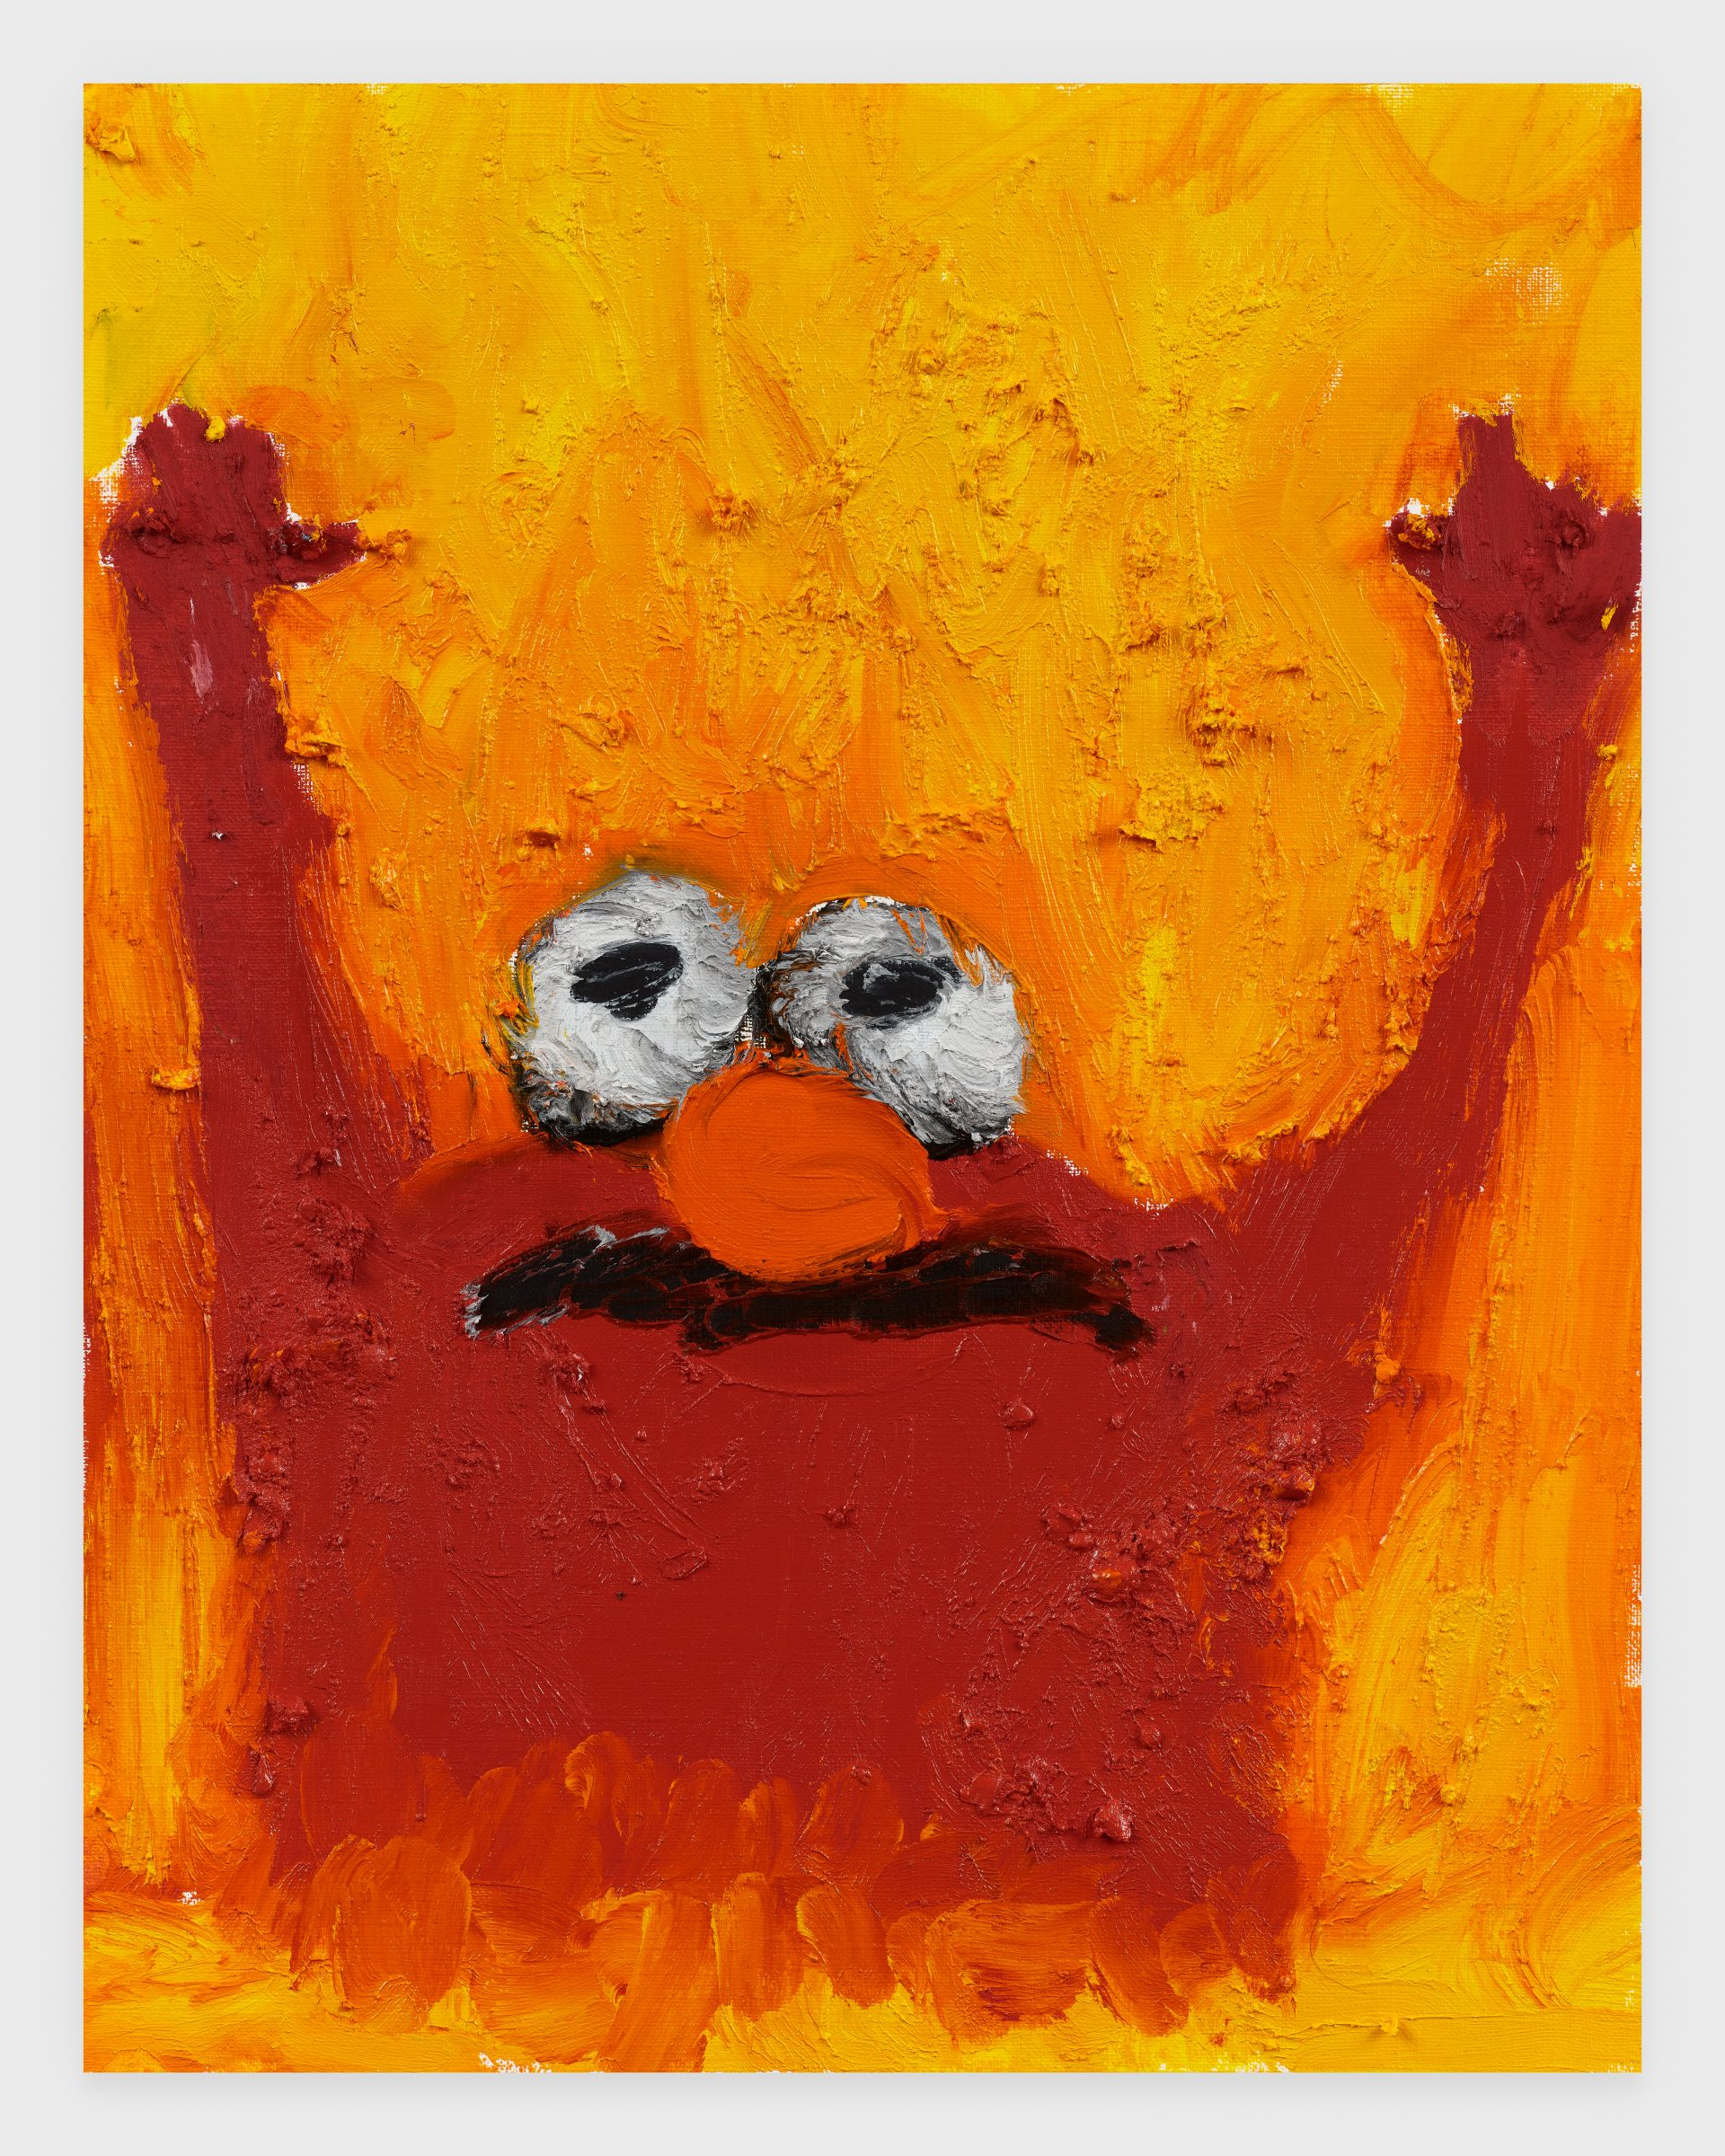 Elmo, 2020, Oil stick on archival paper, 11 x 14 inches